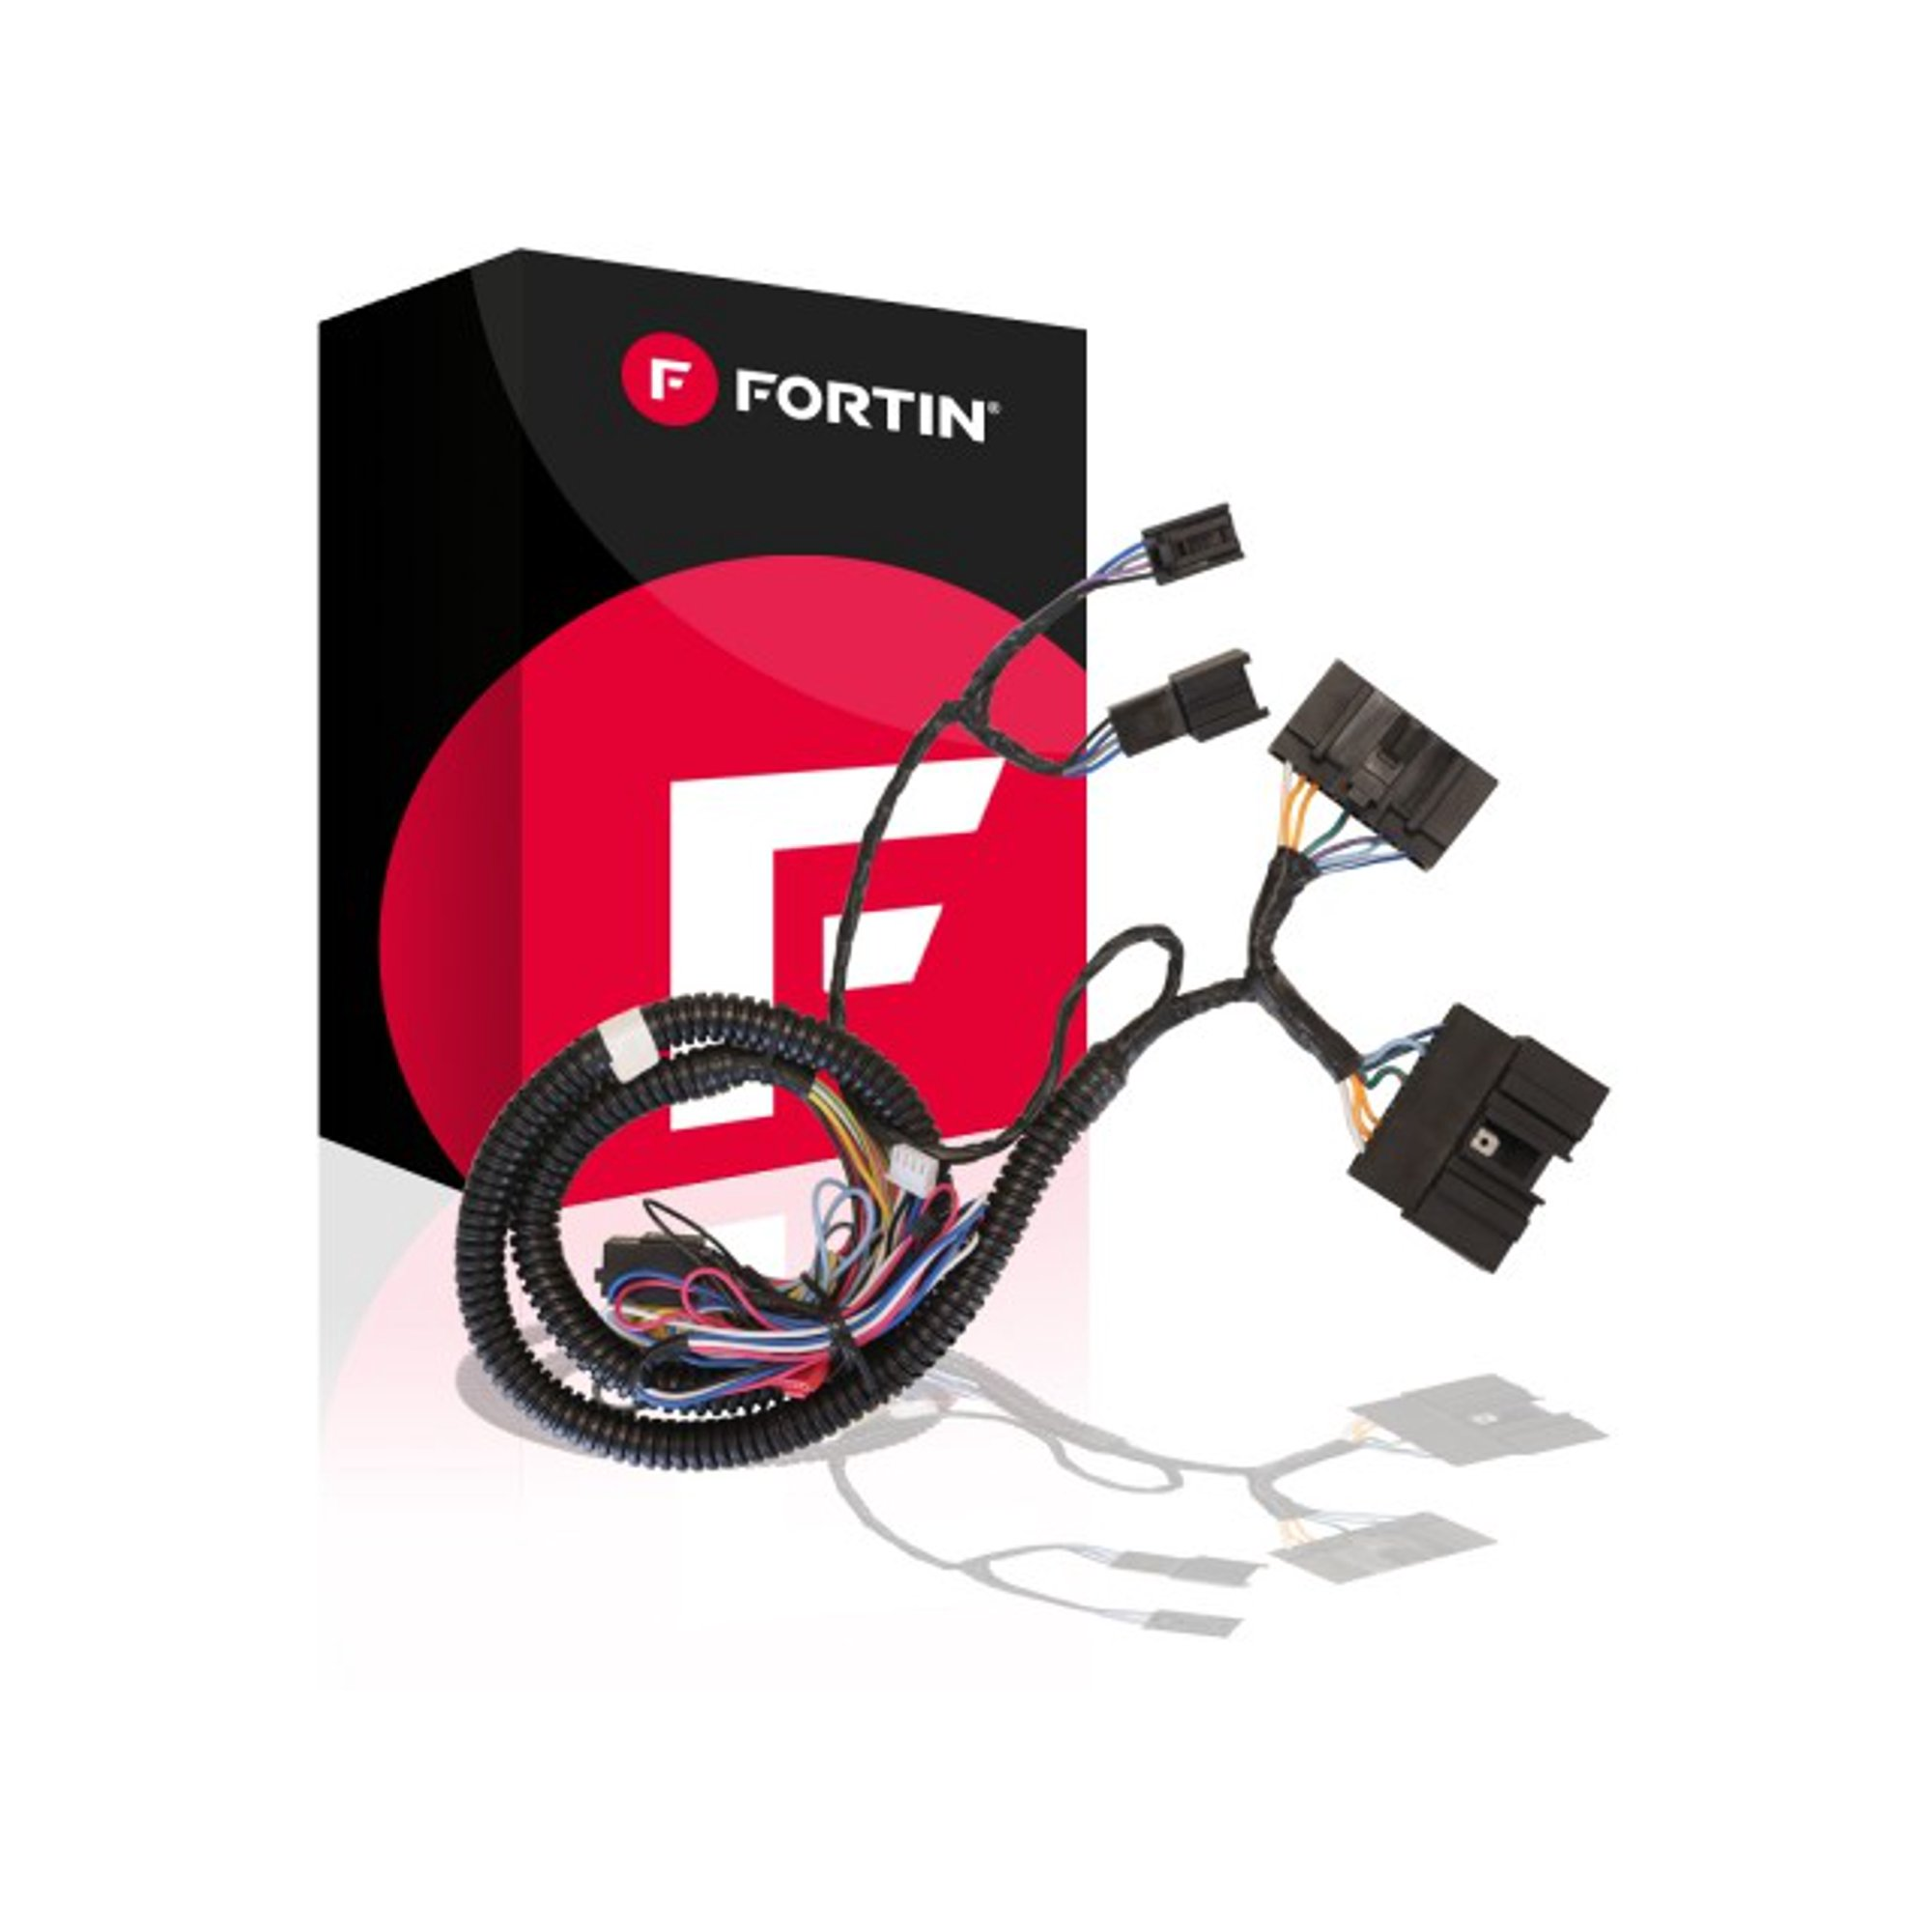 https://www walmart ca/en/ip/crimestopper-thar-for2-car-alarm-wiring-harness-t-harness-oem-style-compatible-with-fortin-evo-all-and-evo-one-bypass-module/prd257pbdpyj6wo